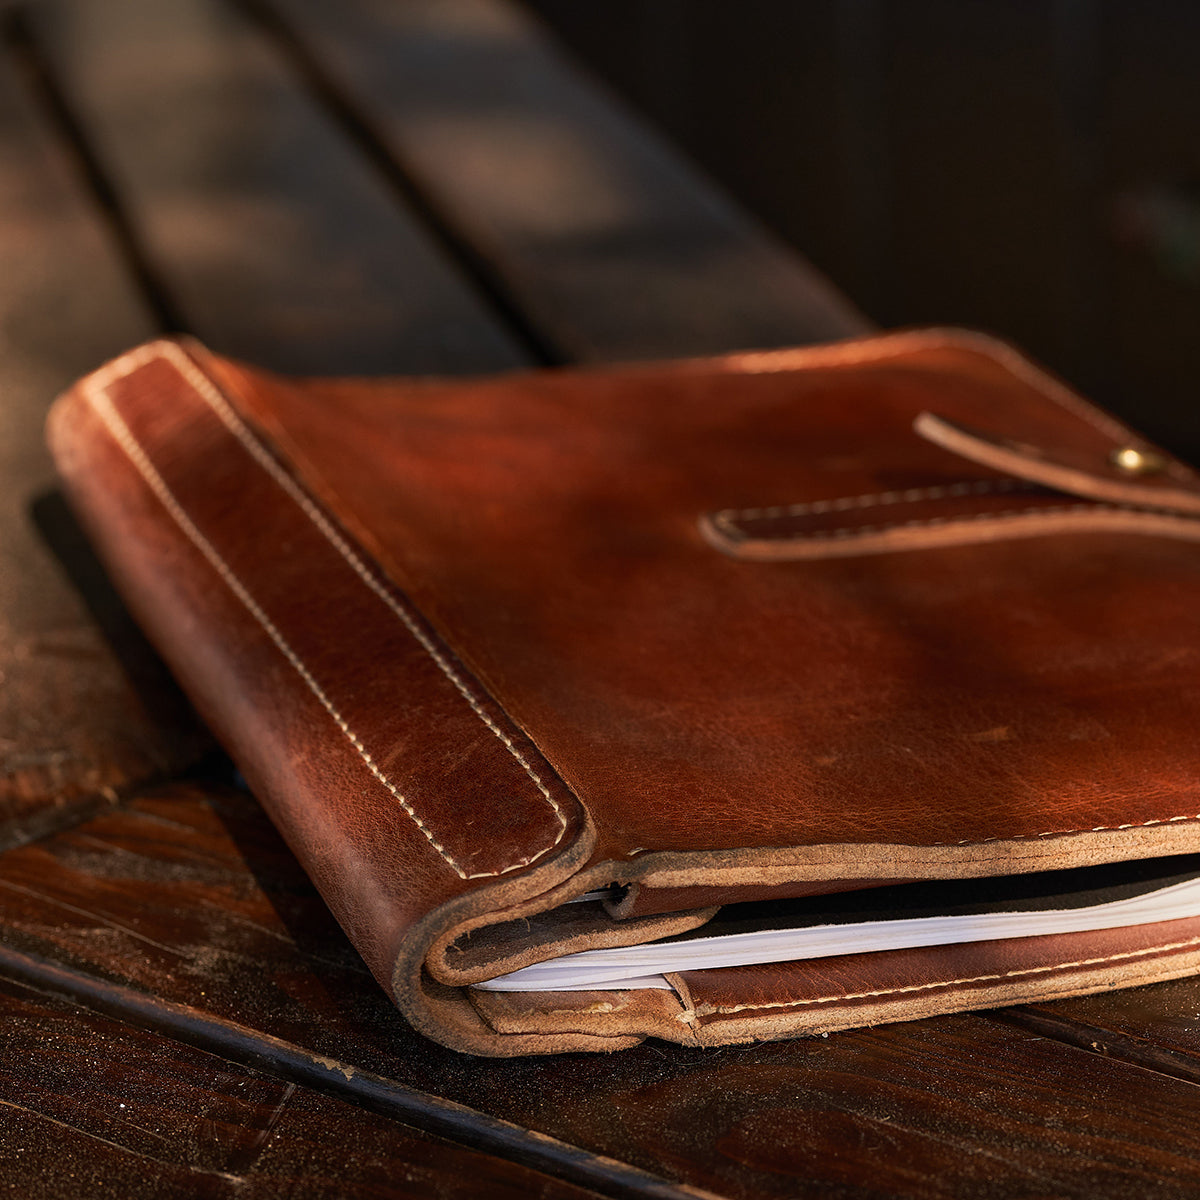 Stone-Washed Executive Folio